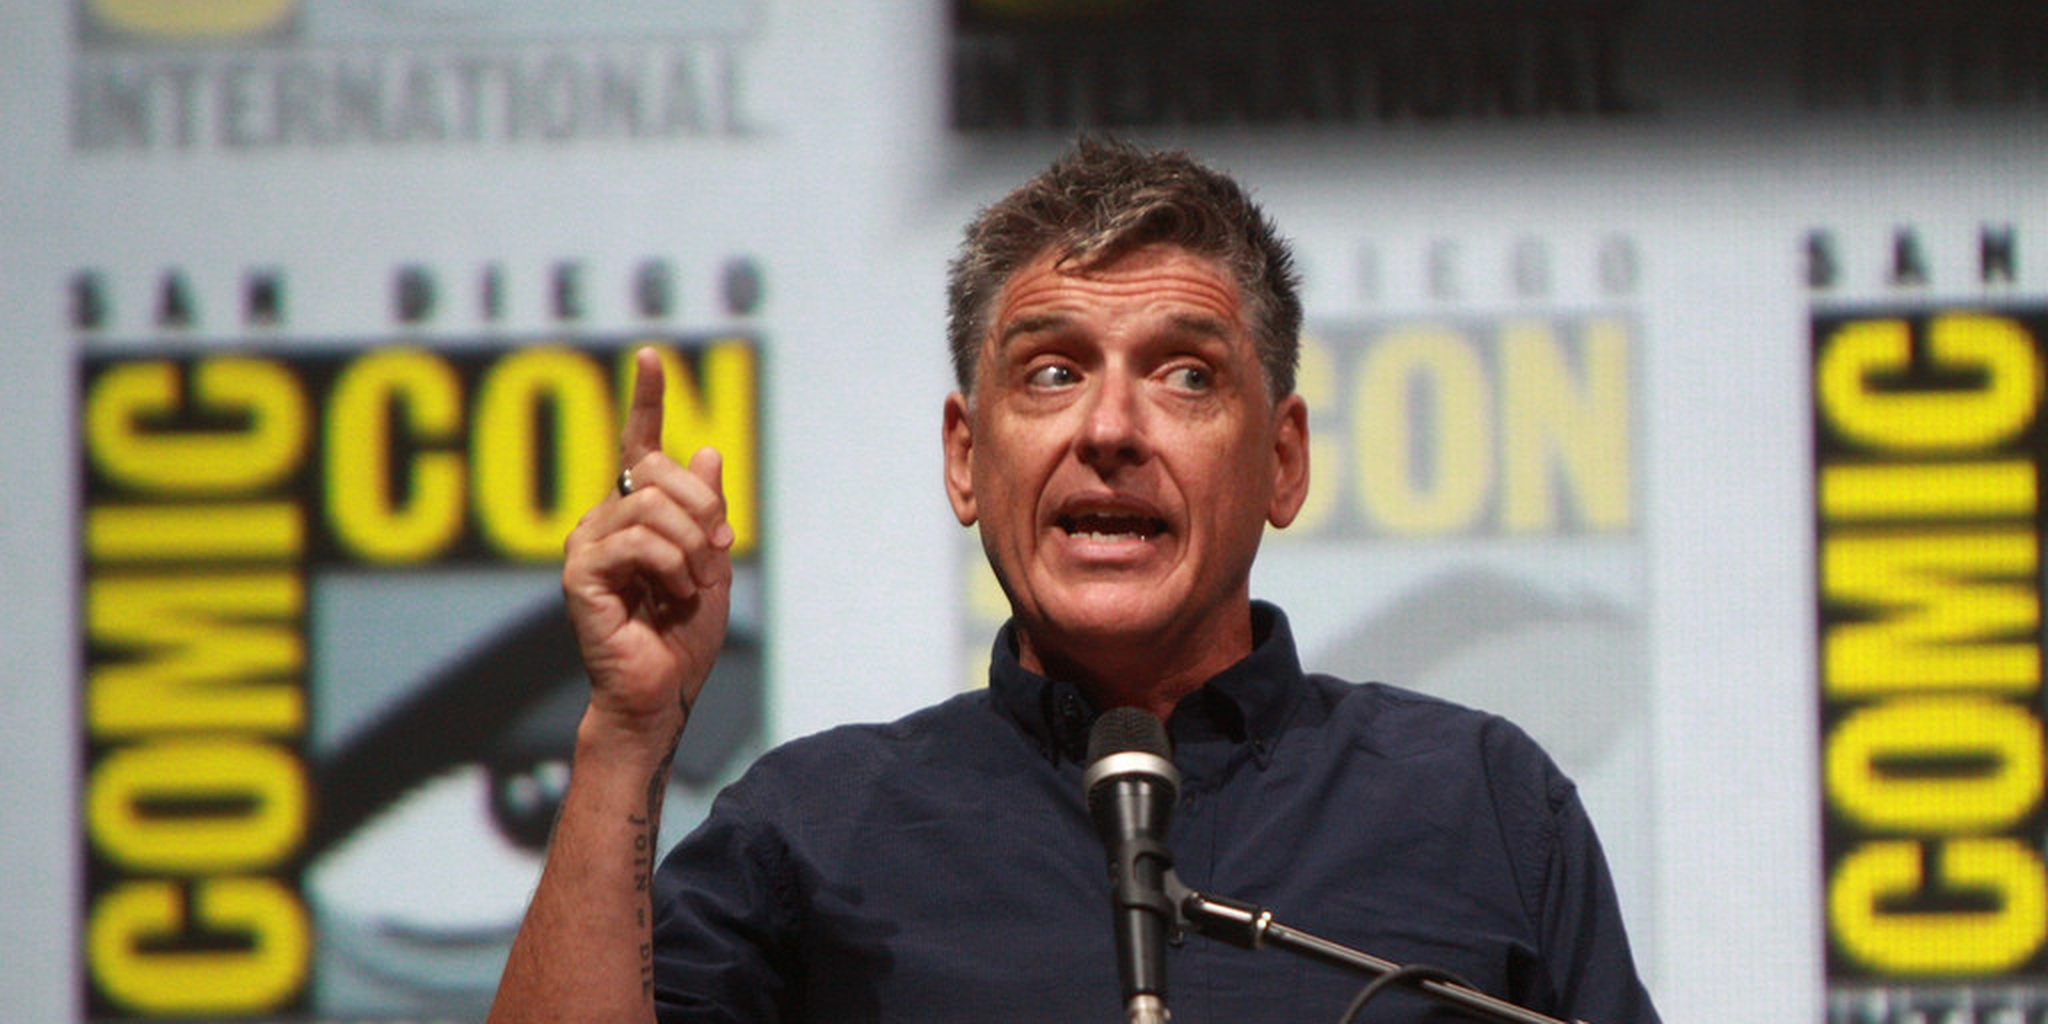 Craig ferguson ending thinkpiece at Comic Con